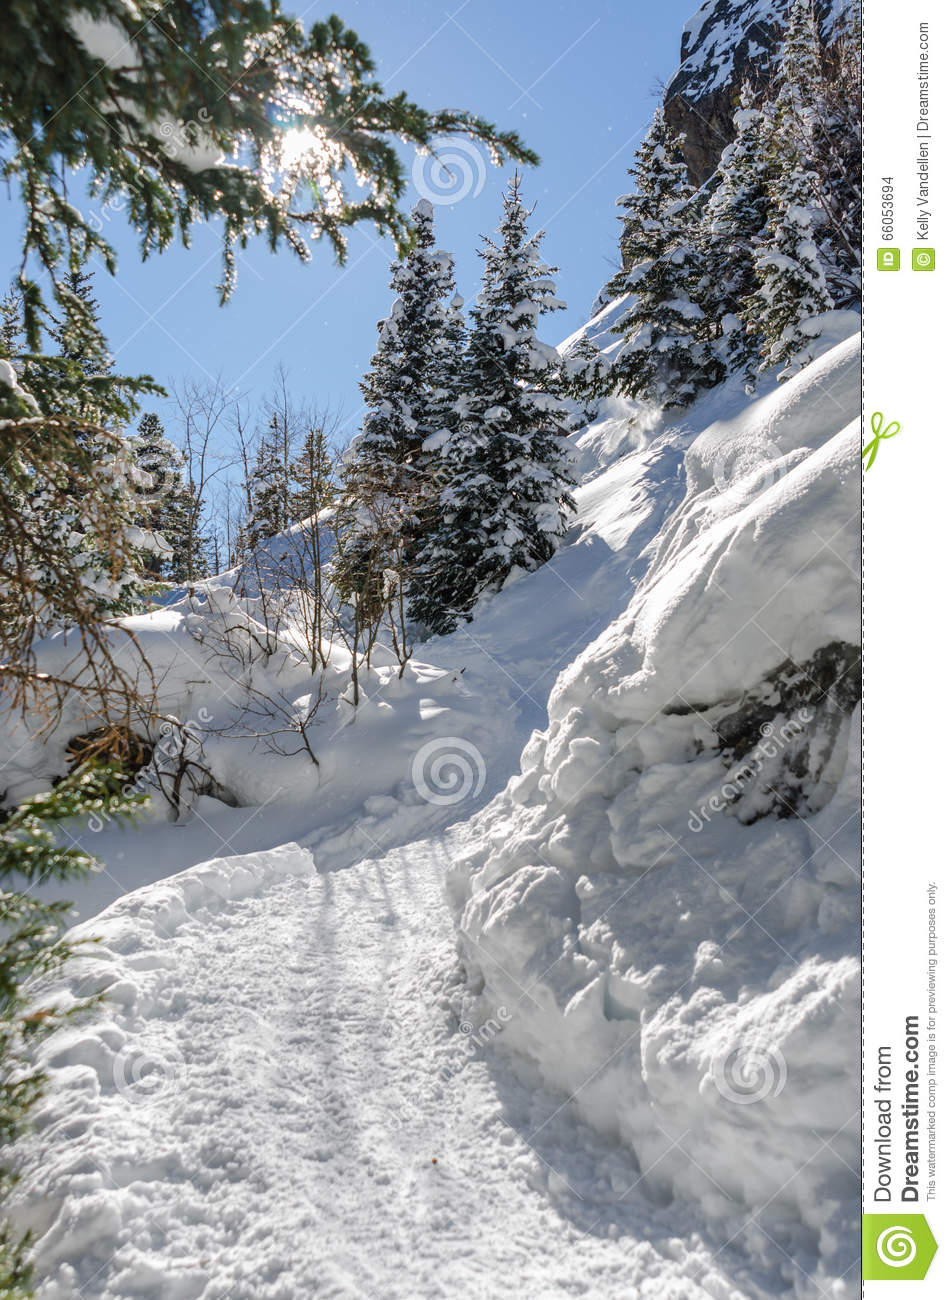 Christmas In Colorado Mountains.Snow Shoe Tracks Uphill In Colorado Mountains Stock Photo